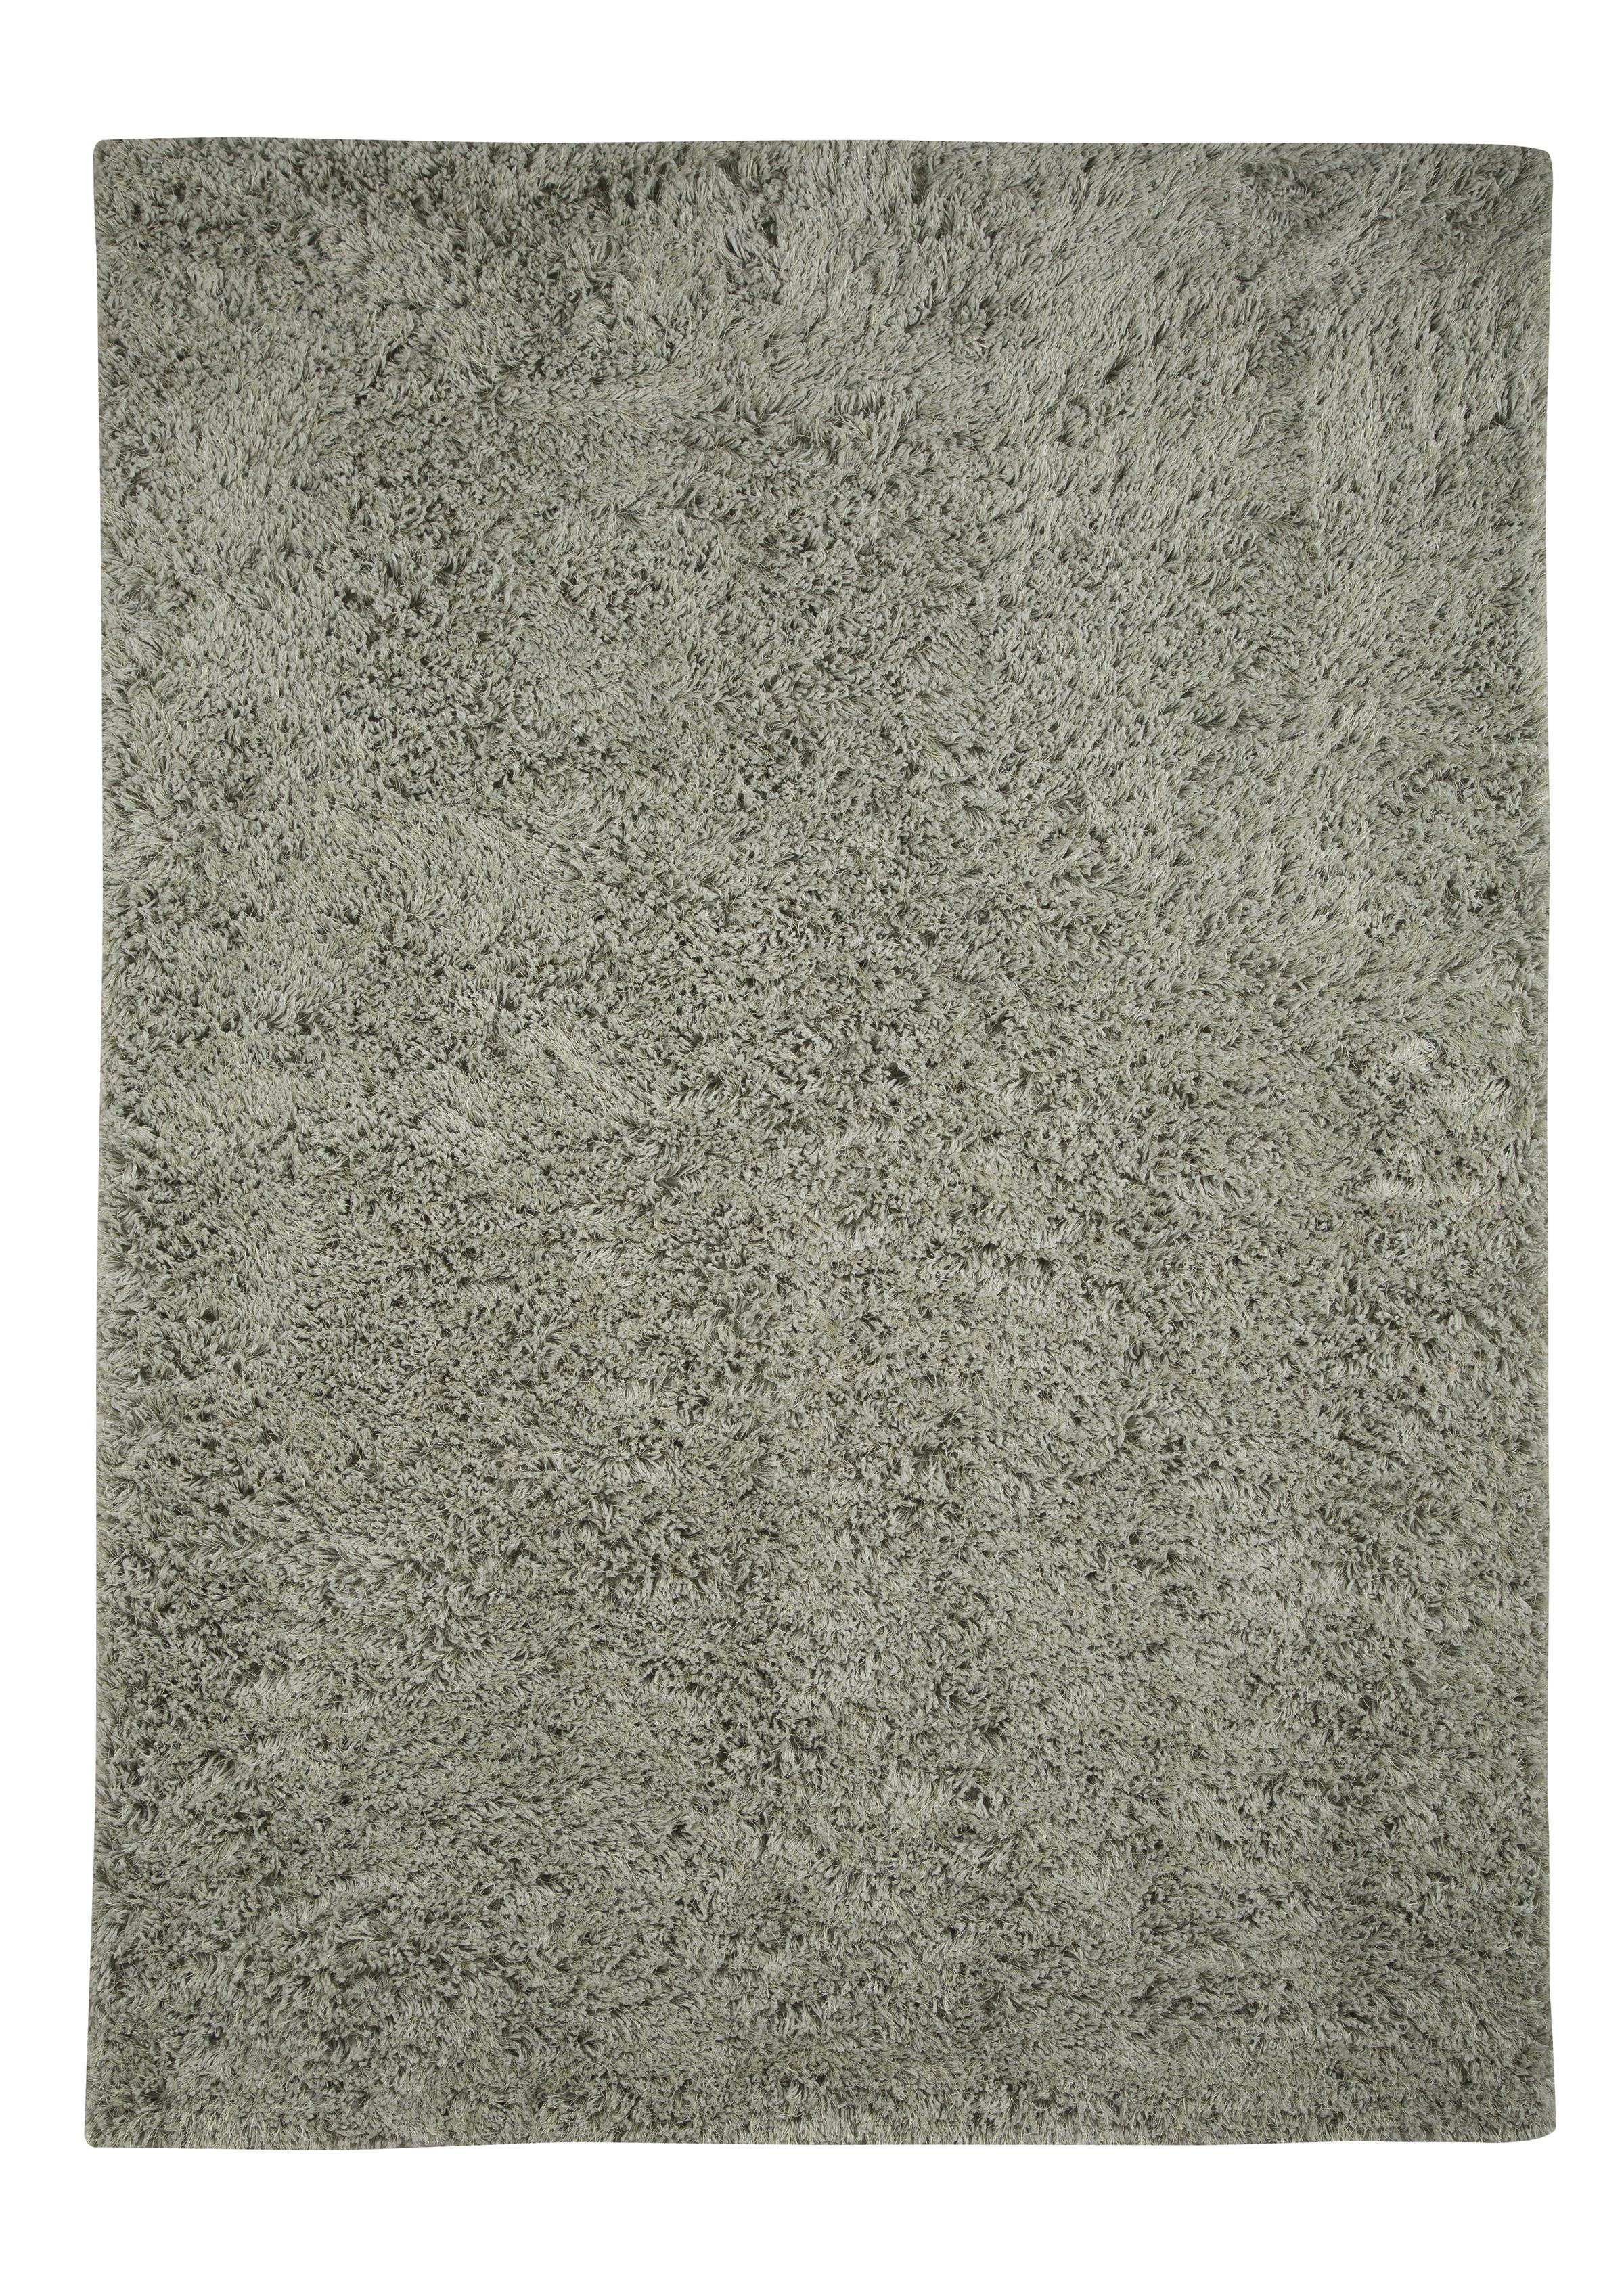 Signature Design by Ashley Contemporary Area Rugs Alonso Sage Medium Rug - Item Number: R400542